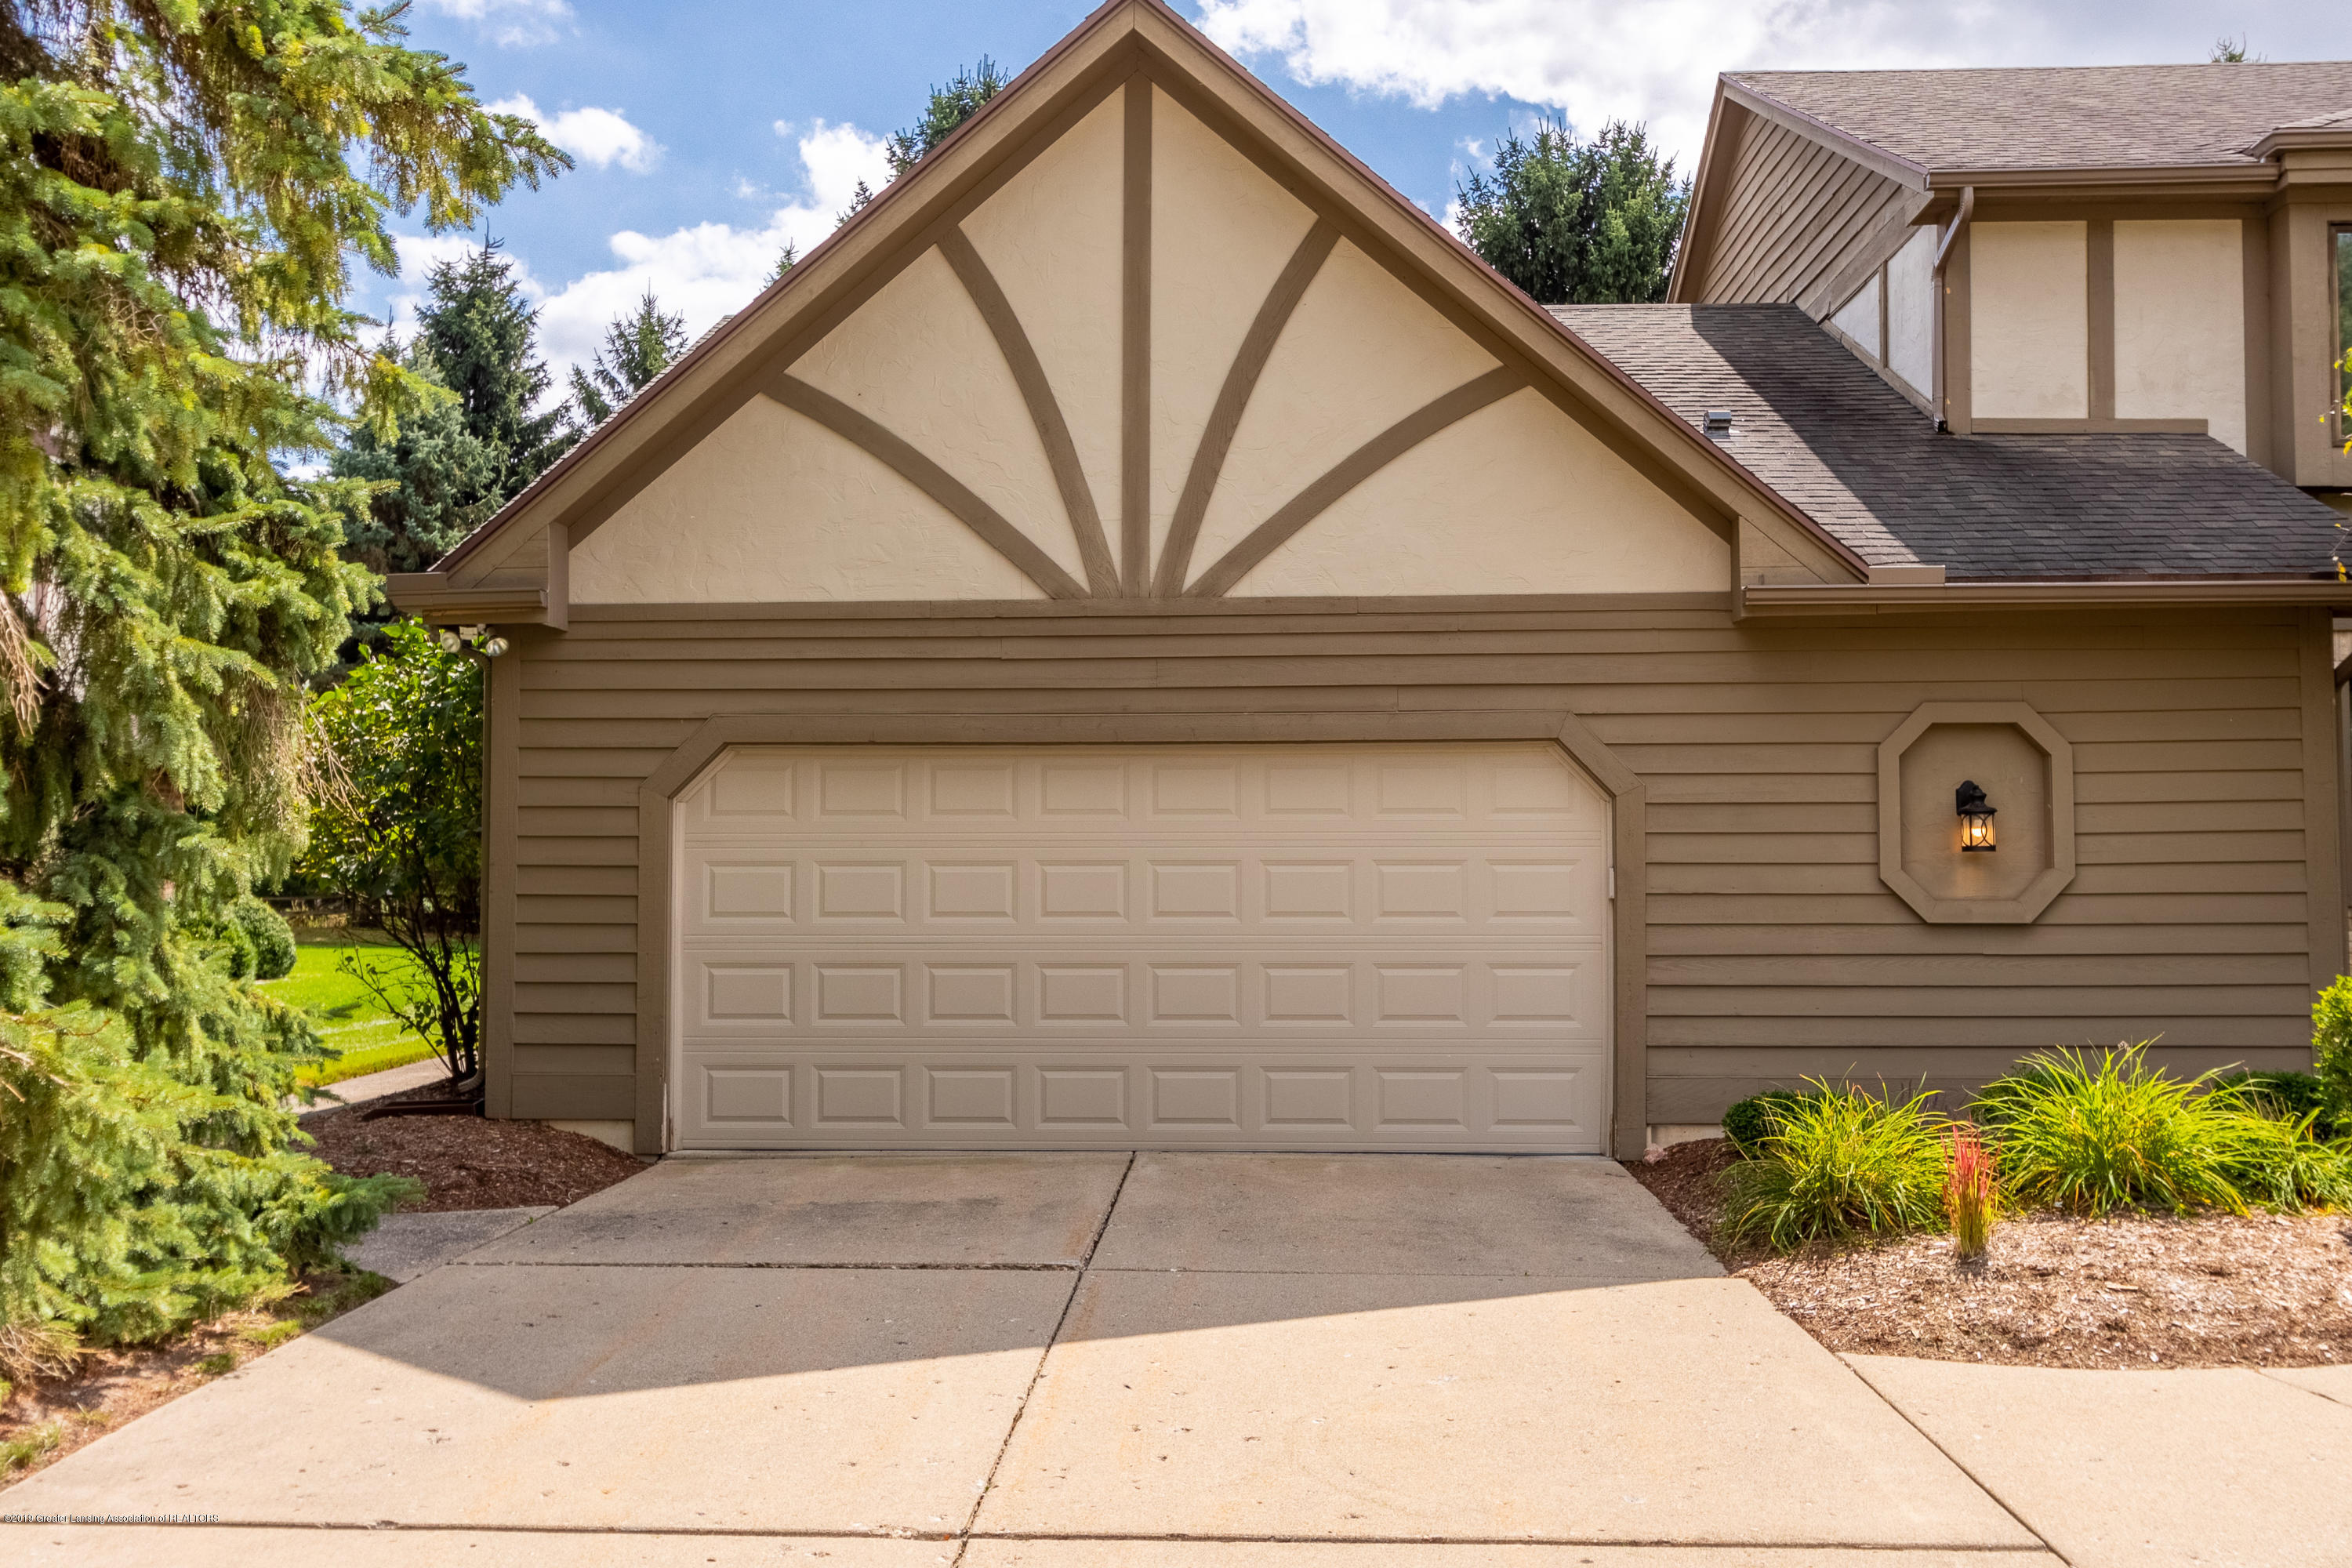 2133 Woodfield Rd - Garage - 4